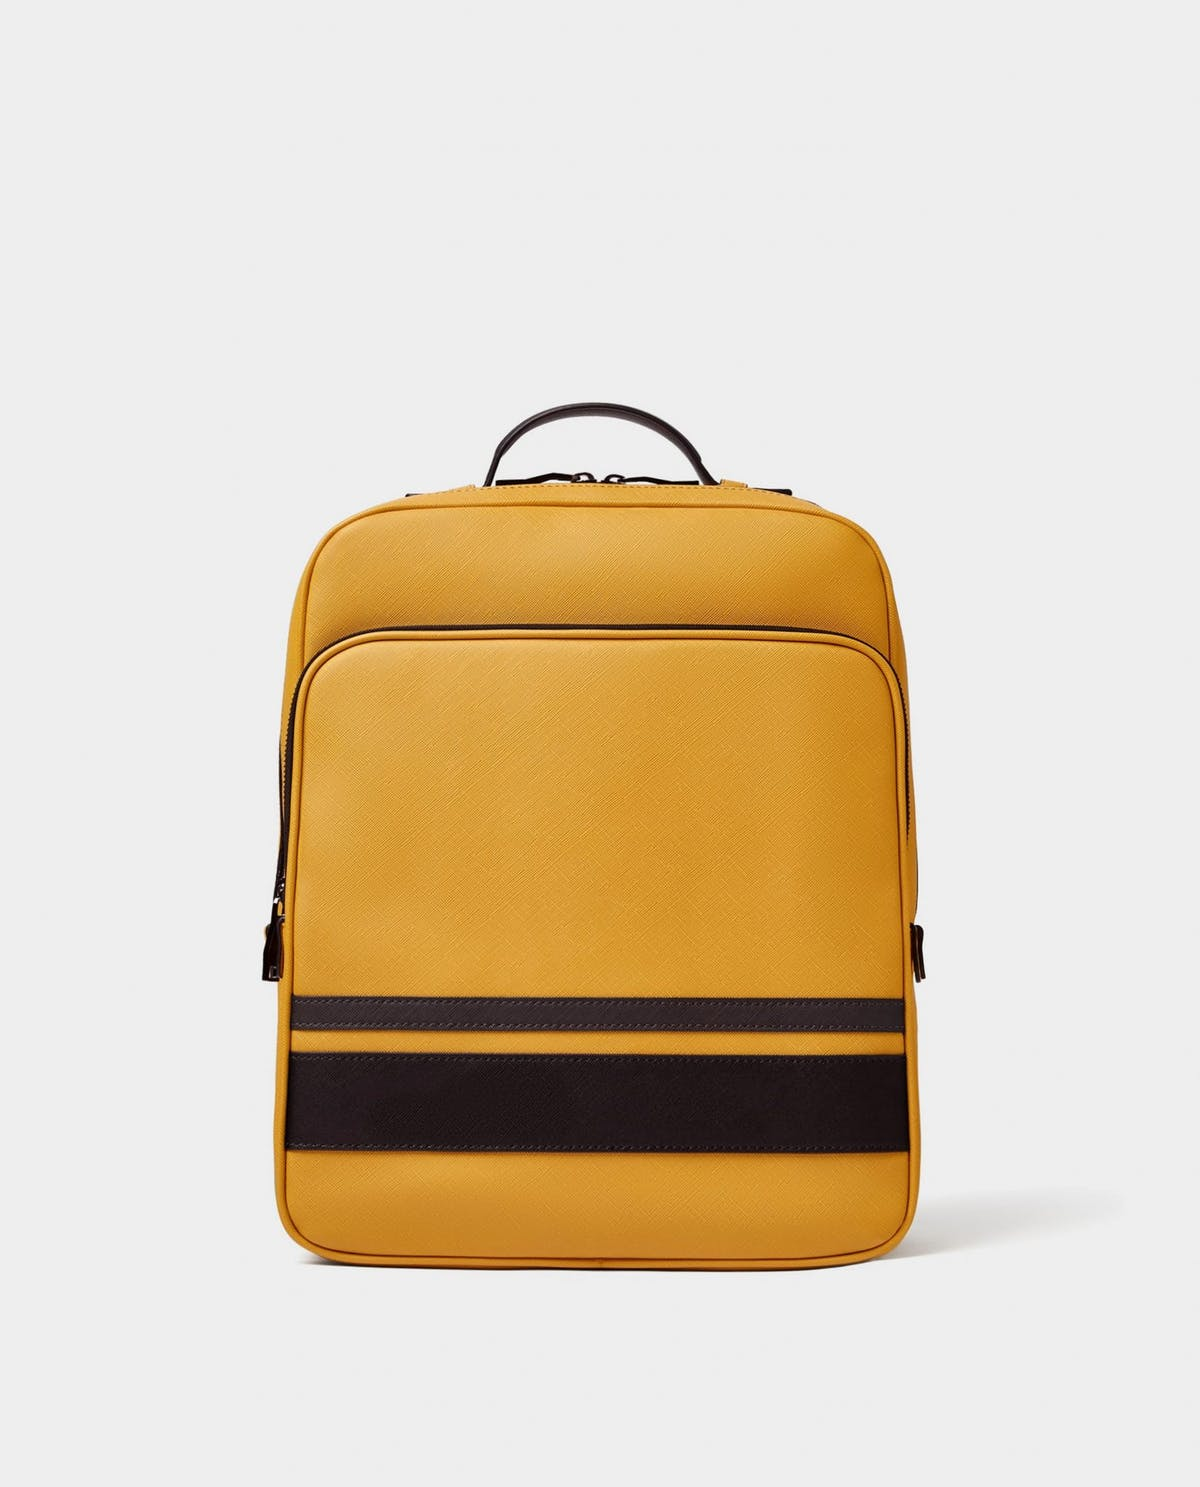 Zara Double Zip Backpack